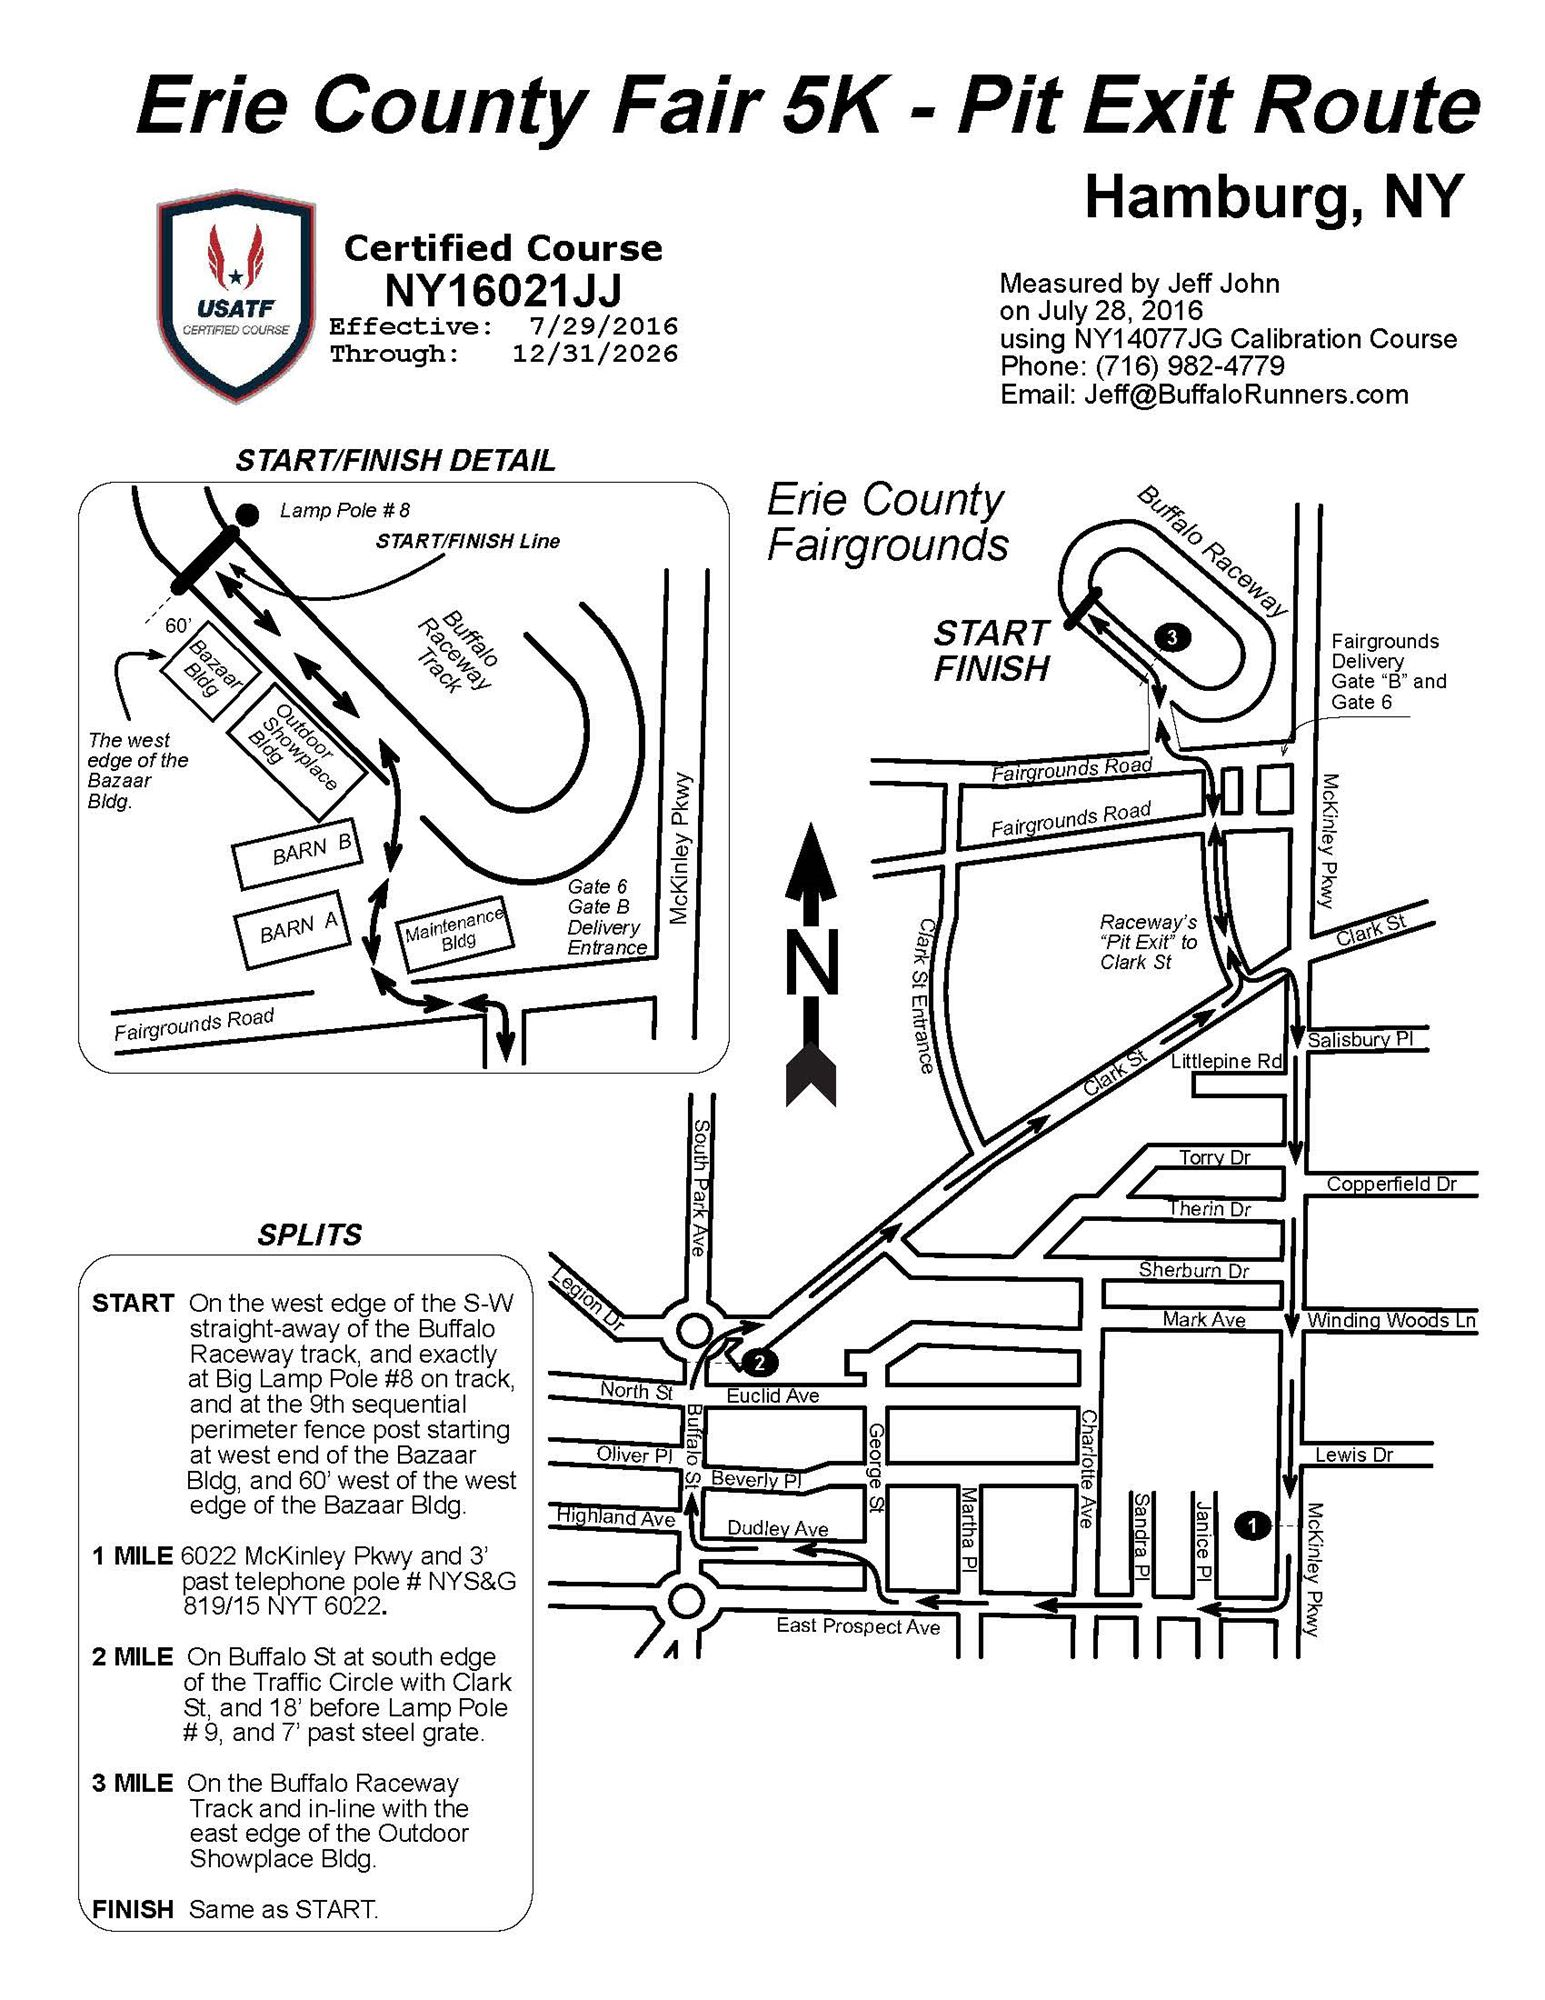 Erie County Fair 5k Route